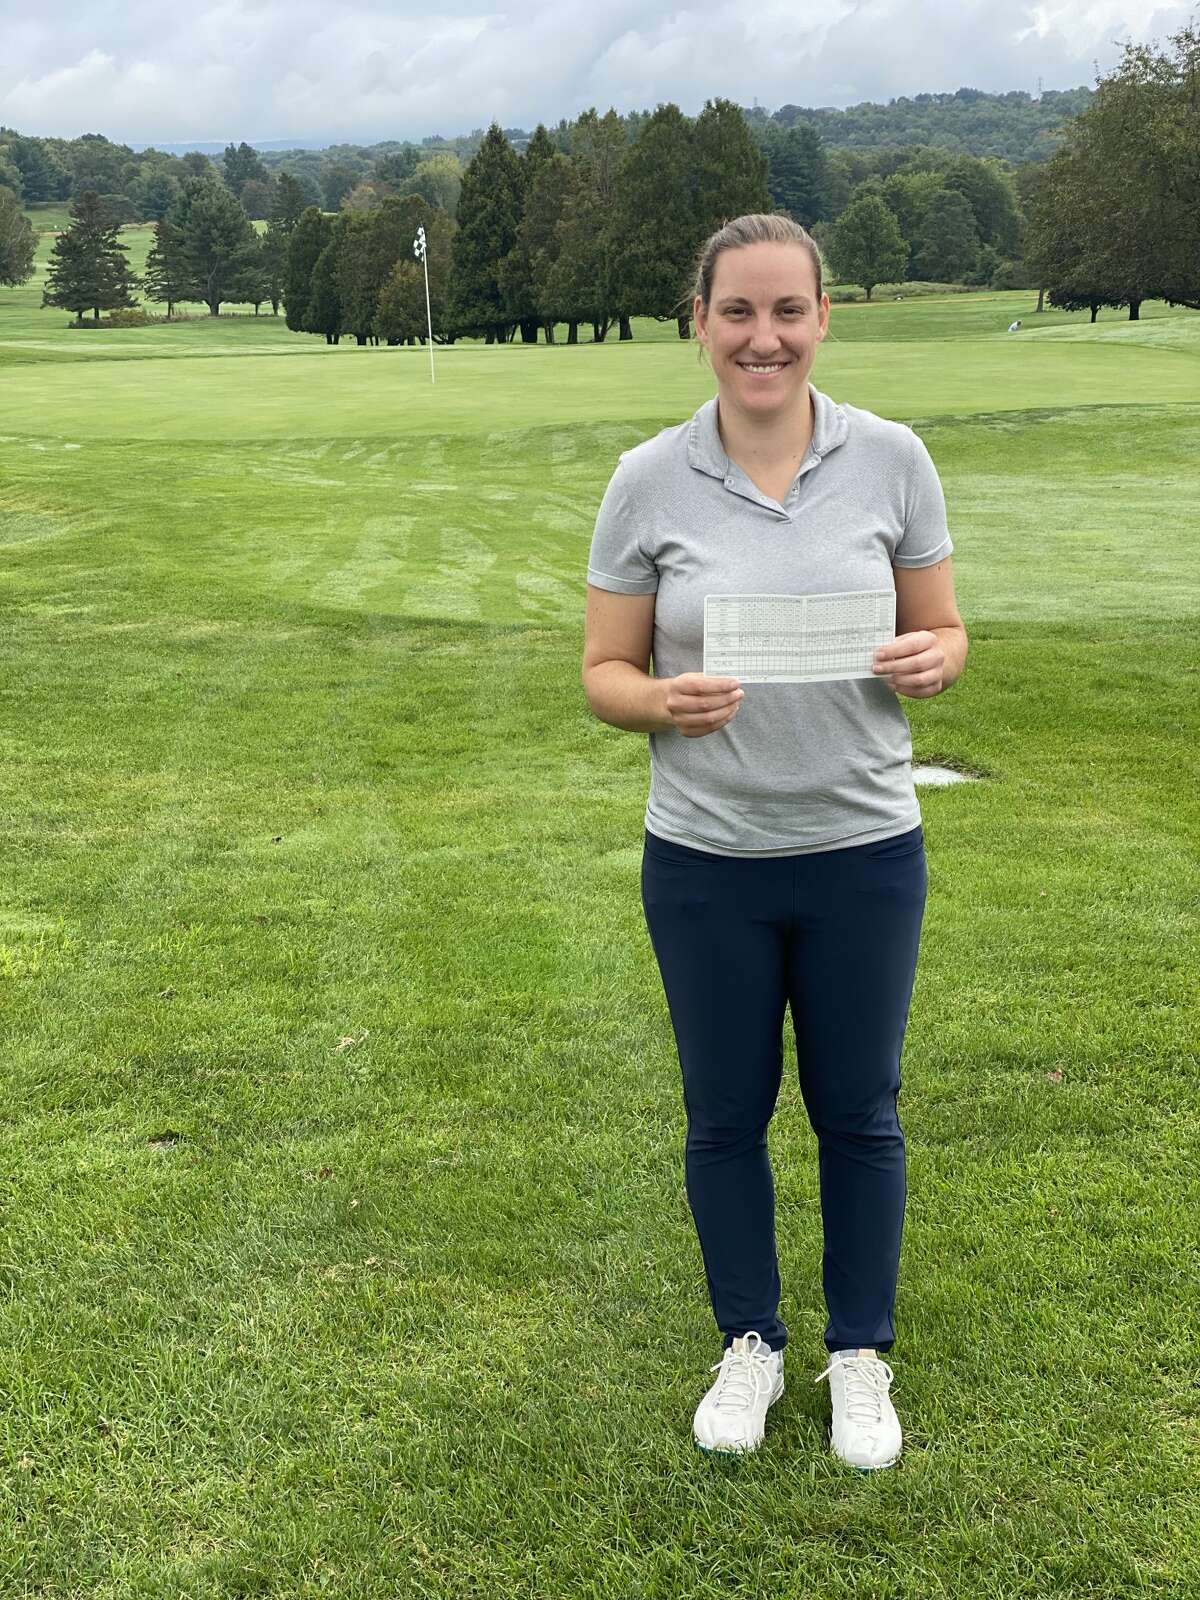 Sam Schuffenecker of Troy broke the course record by carding a 66 at Country Club of Troy. She qualified for the U.S. Women's Mid-Amateur at Berkeley Hall Club's North Course in Bluffton, S.C.(Provided)